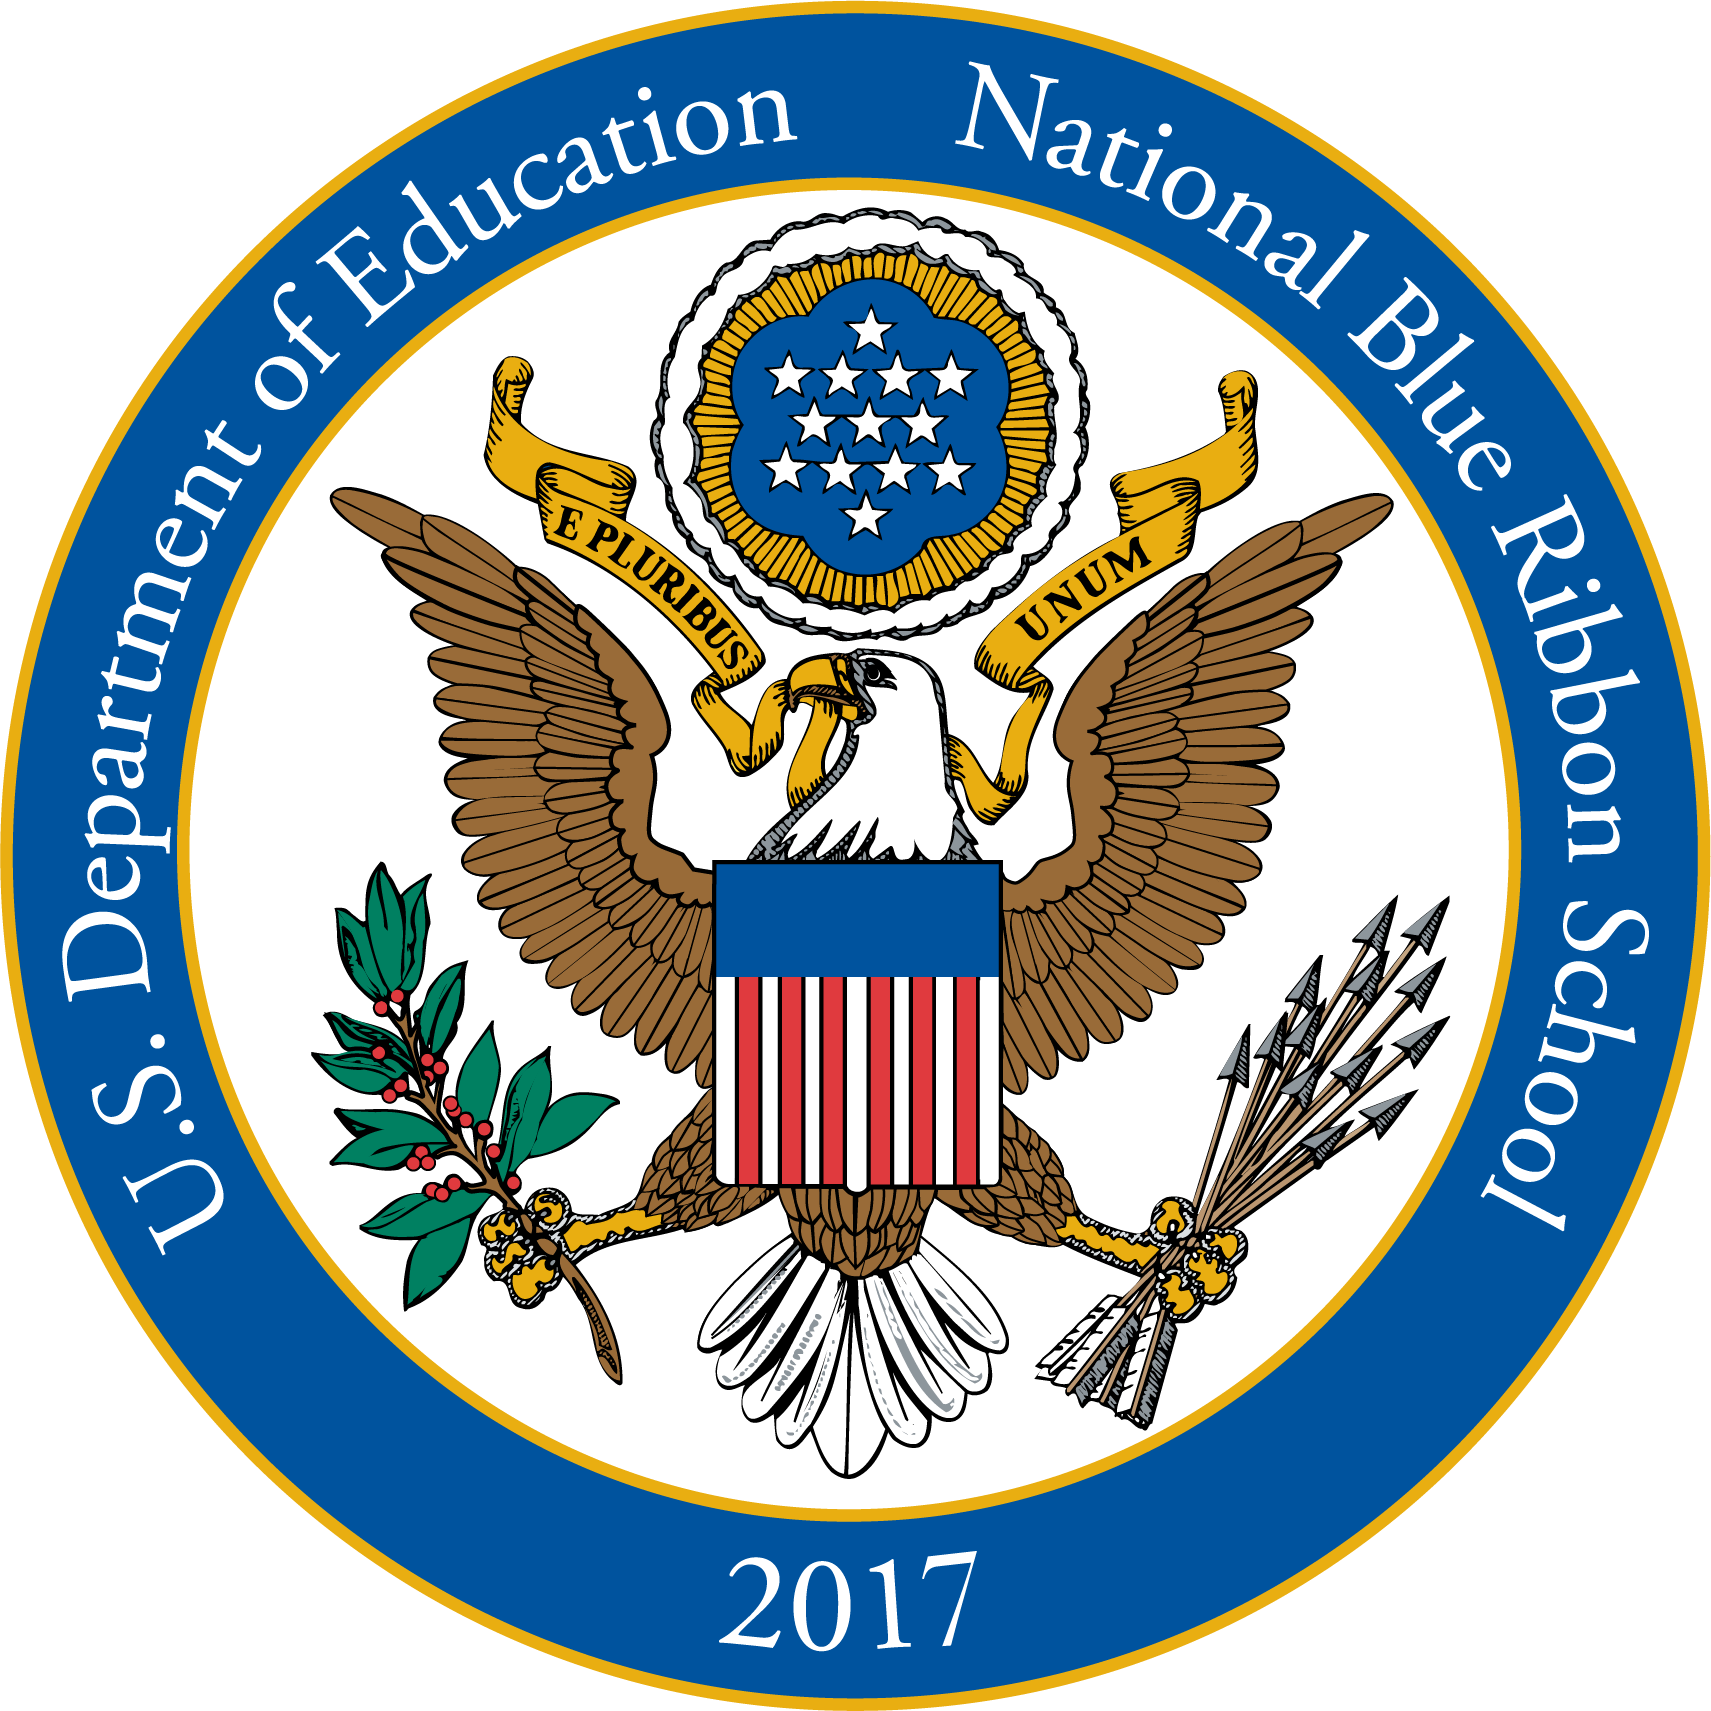 2017 U.S. Department of Education National Blue Ribbon School